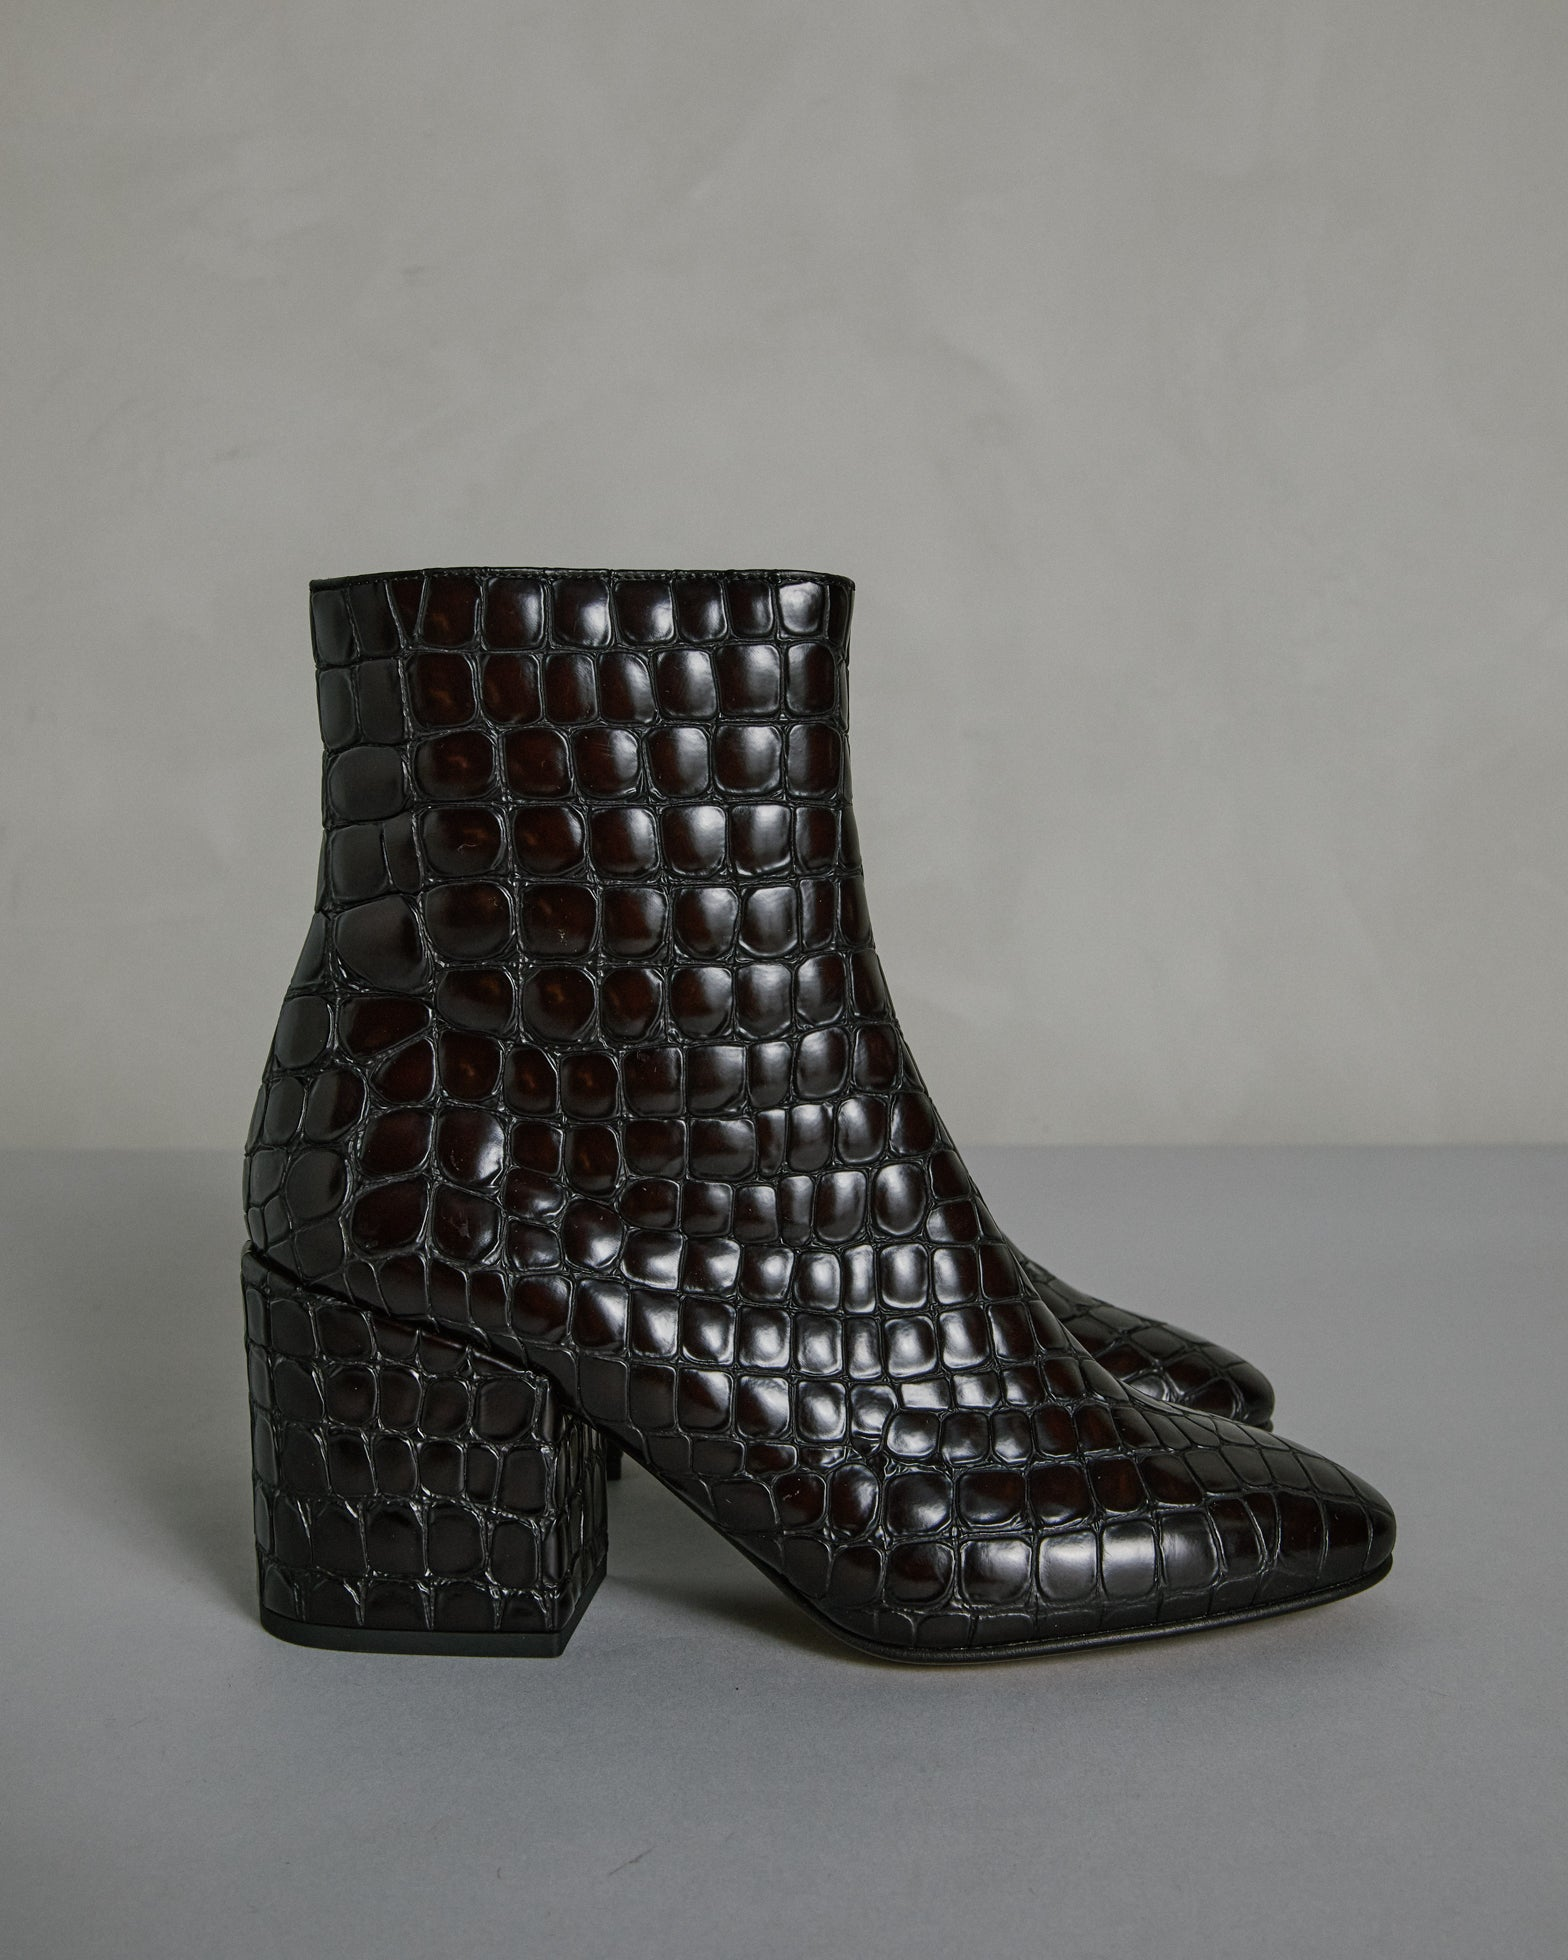 Mohawk General Store | Dries Van Noten | 202/19/H70 Boot in Dark Brown